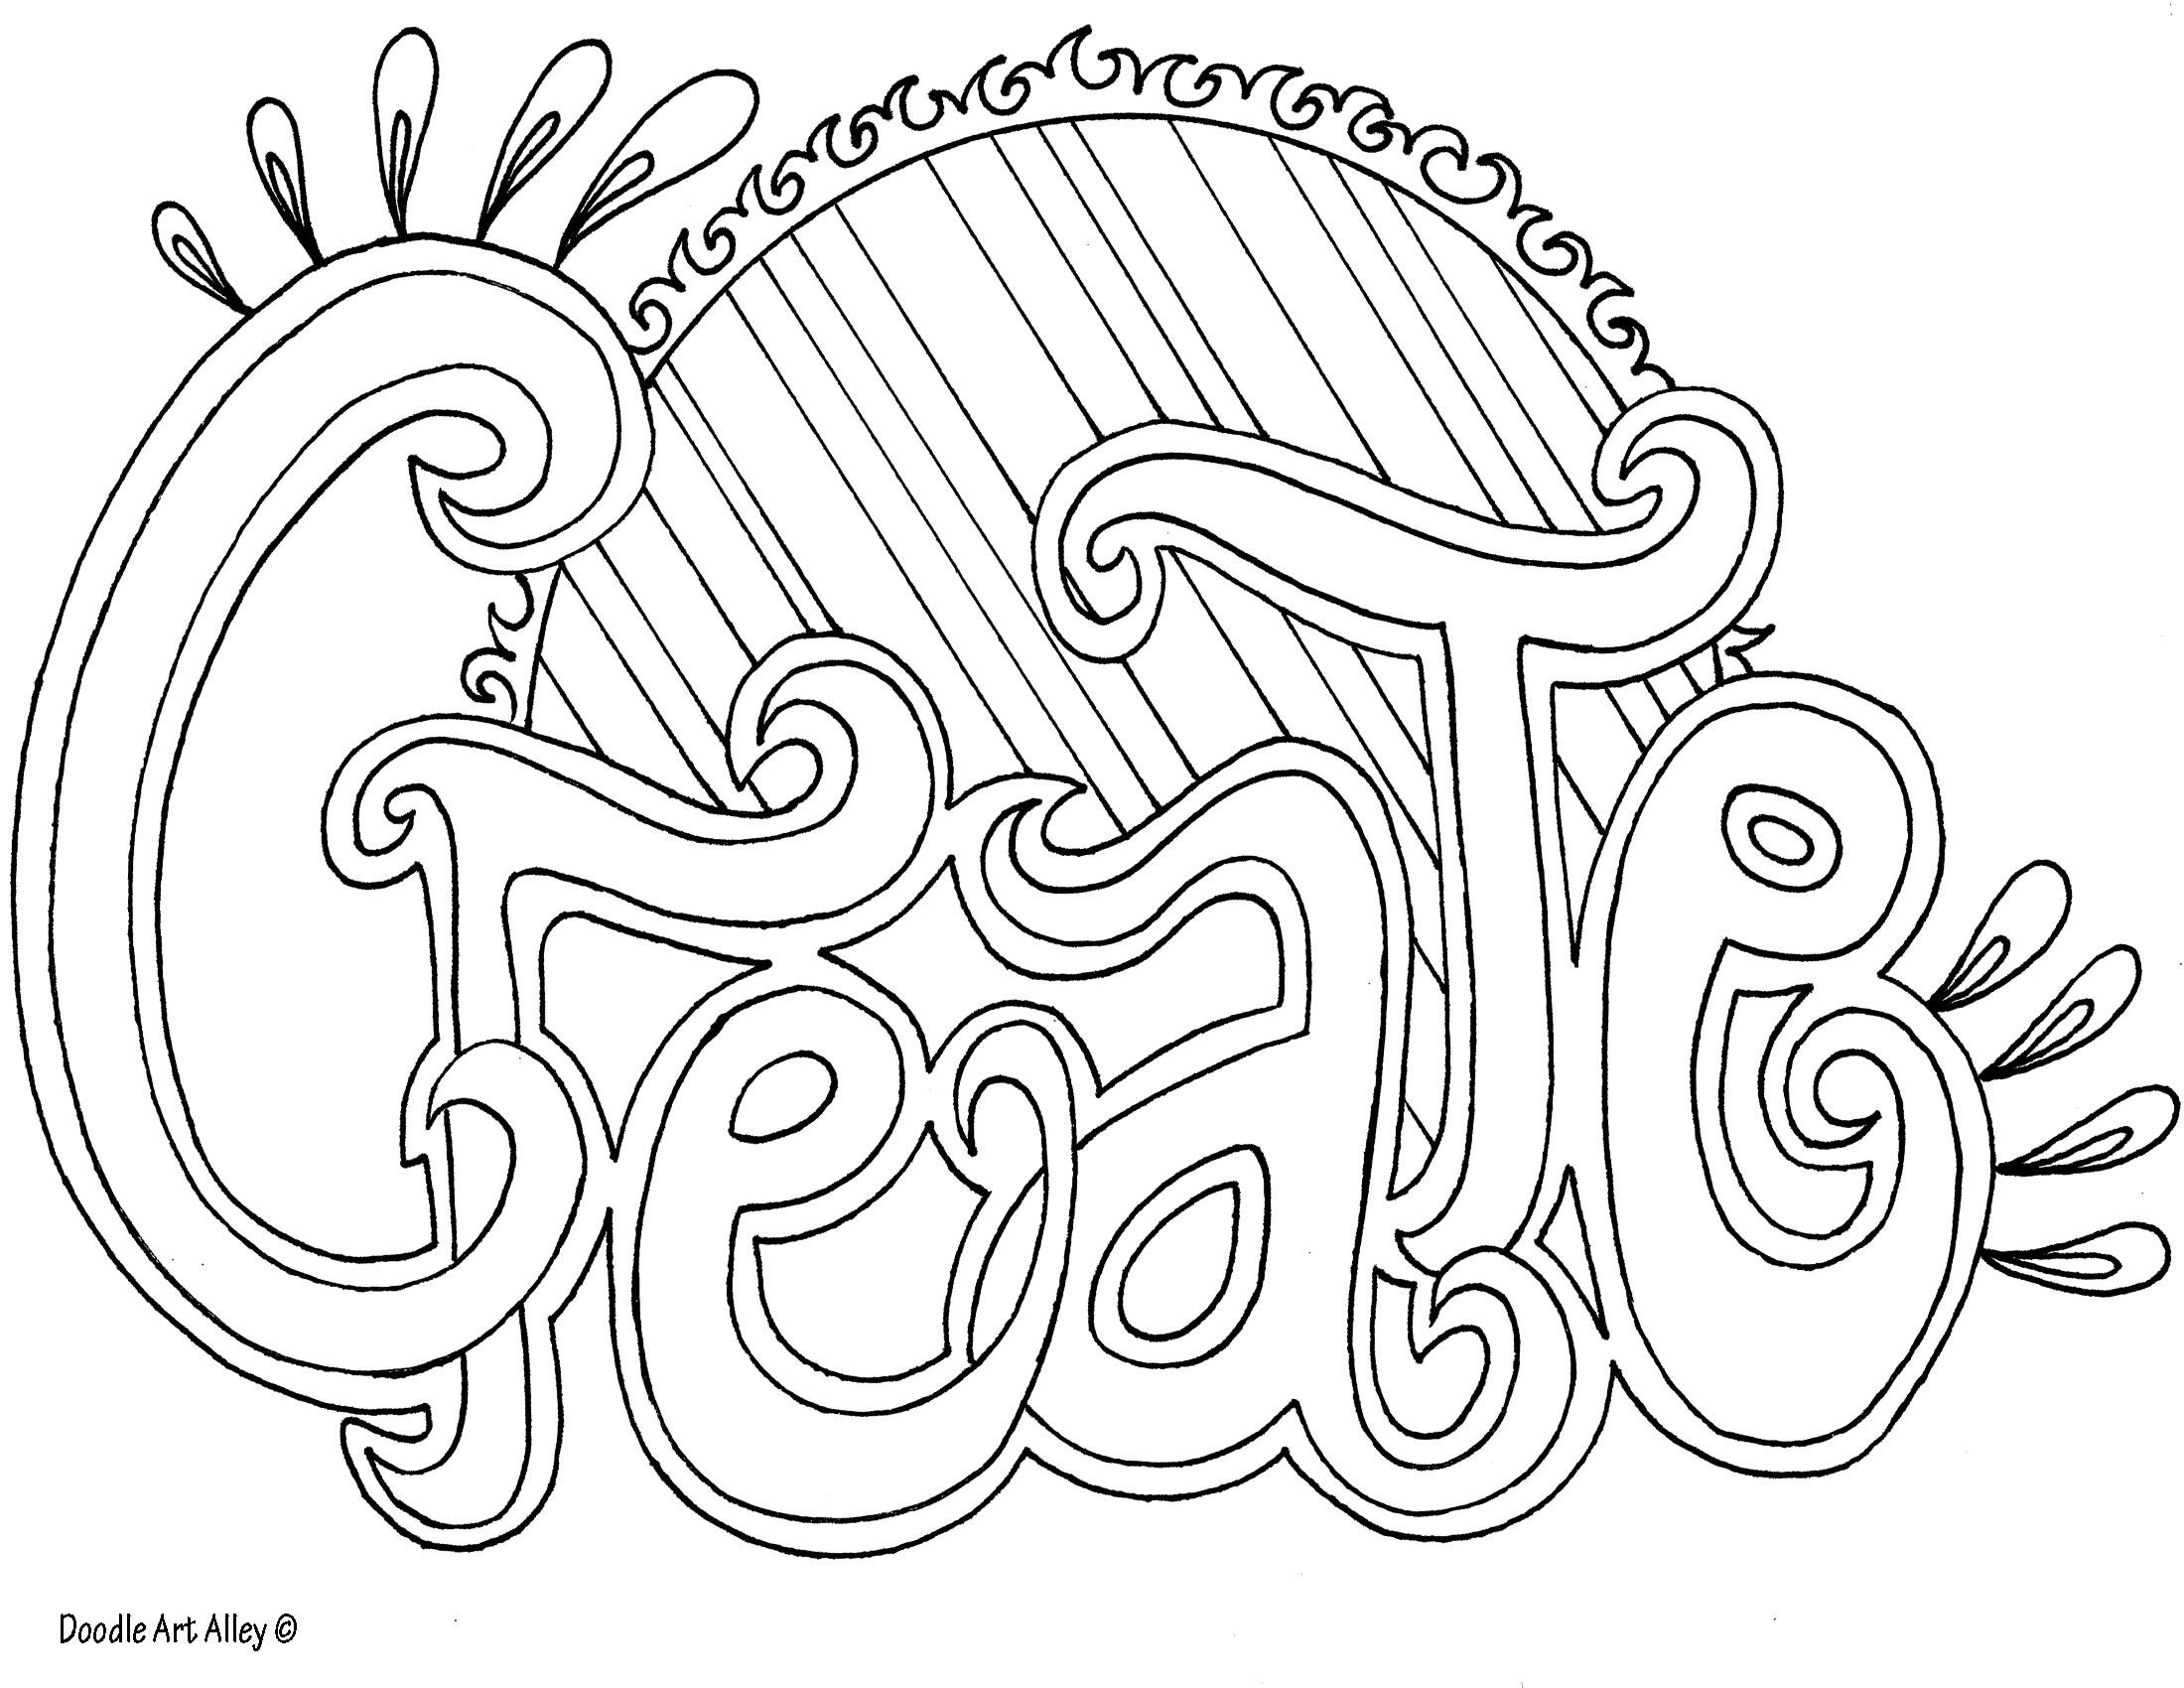 ❁༺ ❤ ༻❁༺ Create Coloring Page ༻❁༺ ❤ ༻❁༺ | PRINTABLE ...